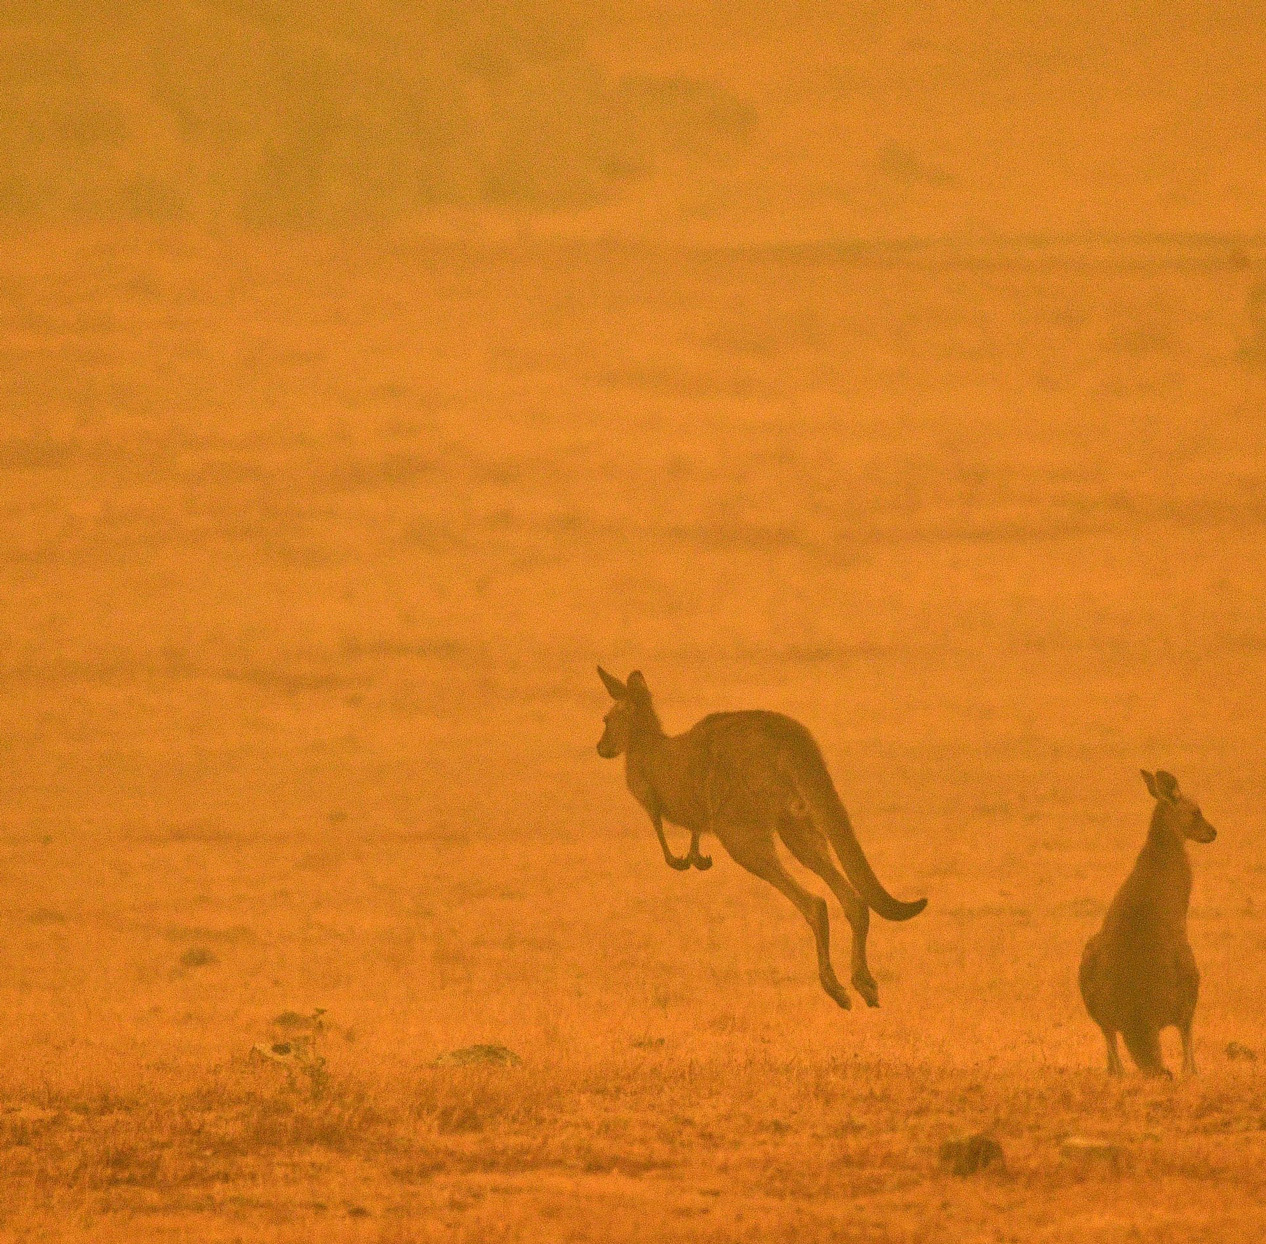 Kangaroo jumping in an orange landscape